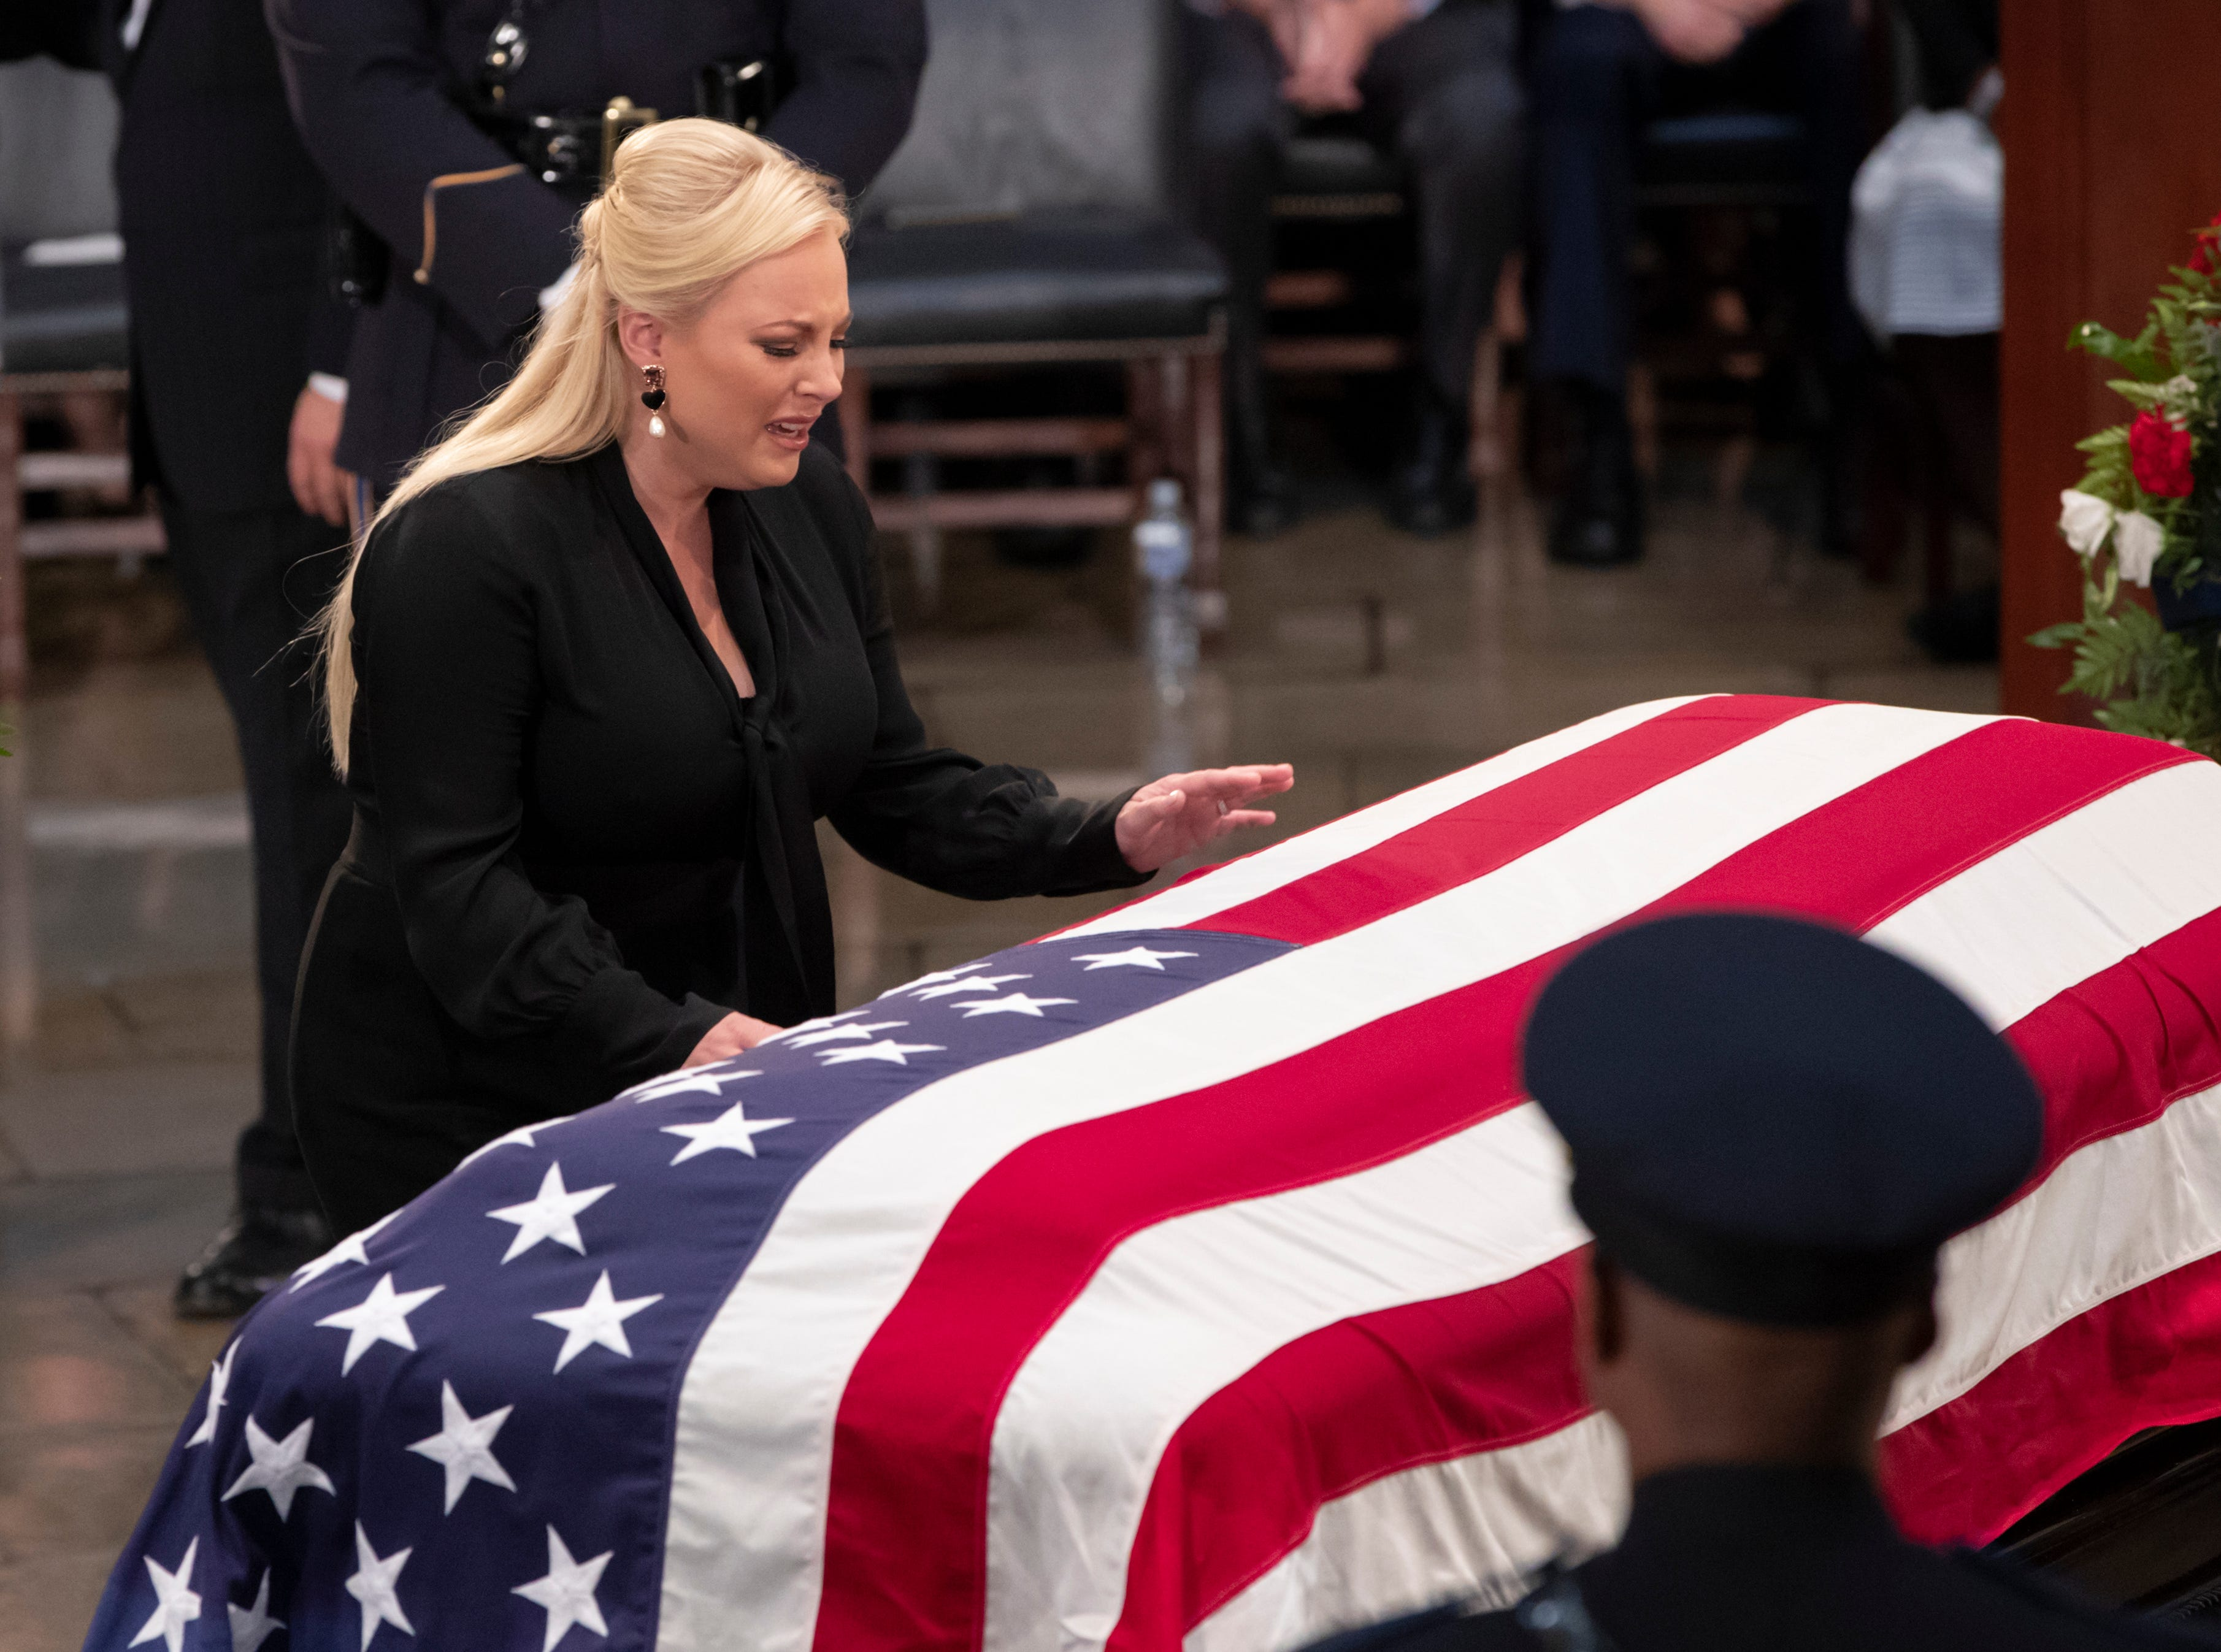 Meghan McCain reaches out to touch the flag-draped casket bearing the remains of her father, Sen. John McCain, R-Ariz., during a farewell ceremony in the Capitol Rotunda, Friday, Aug. 31, 2018, in Washington.  (AP Photo/J. Scott Applewhite)